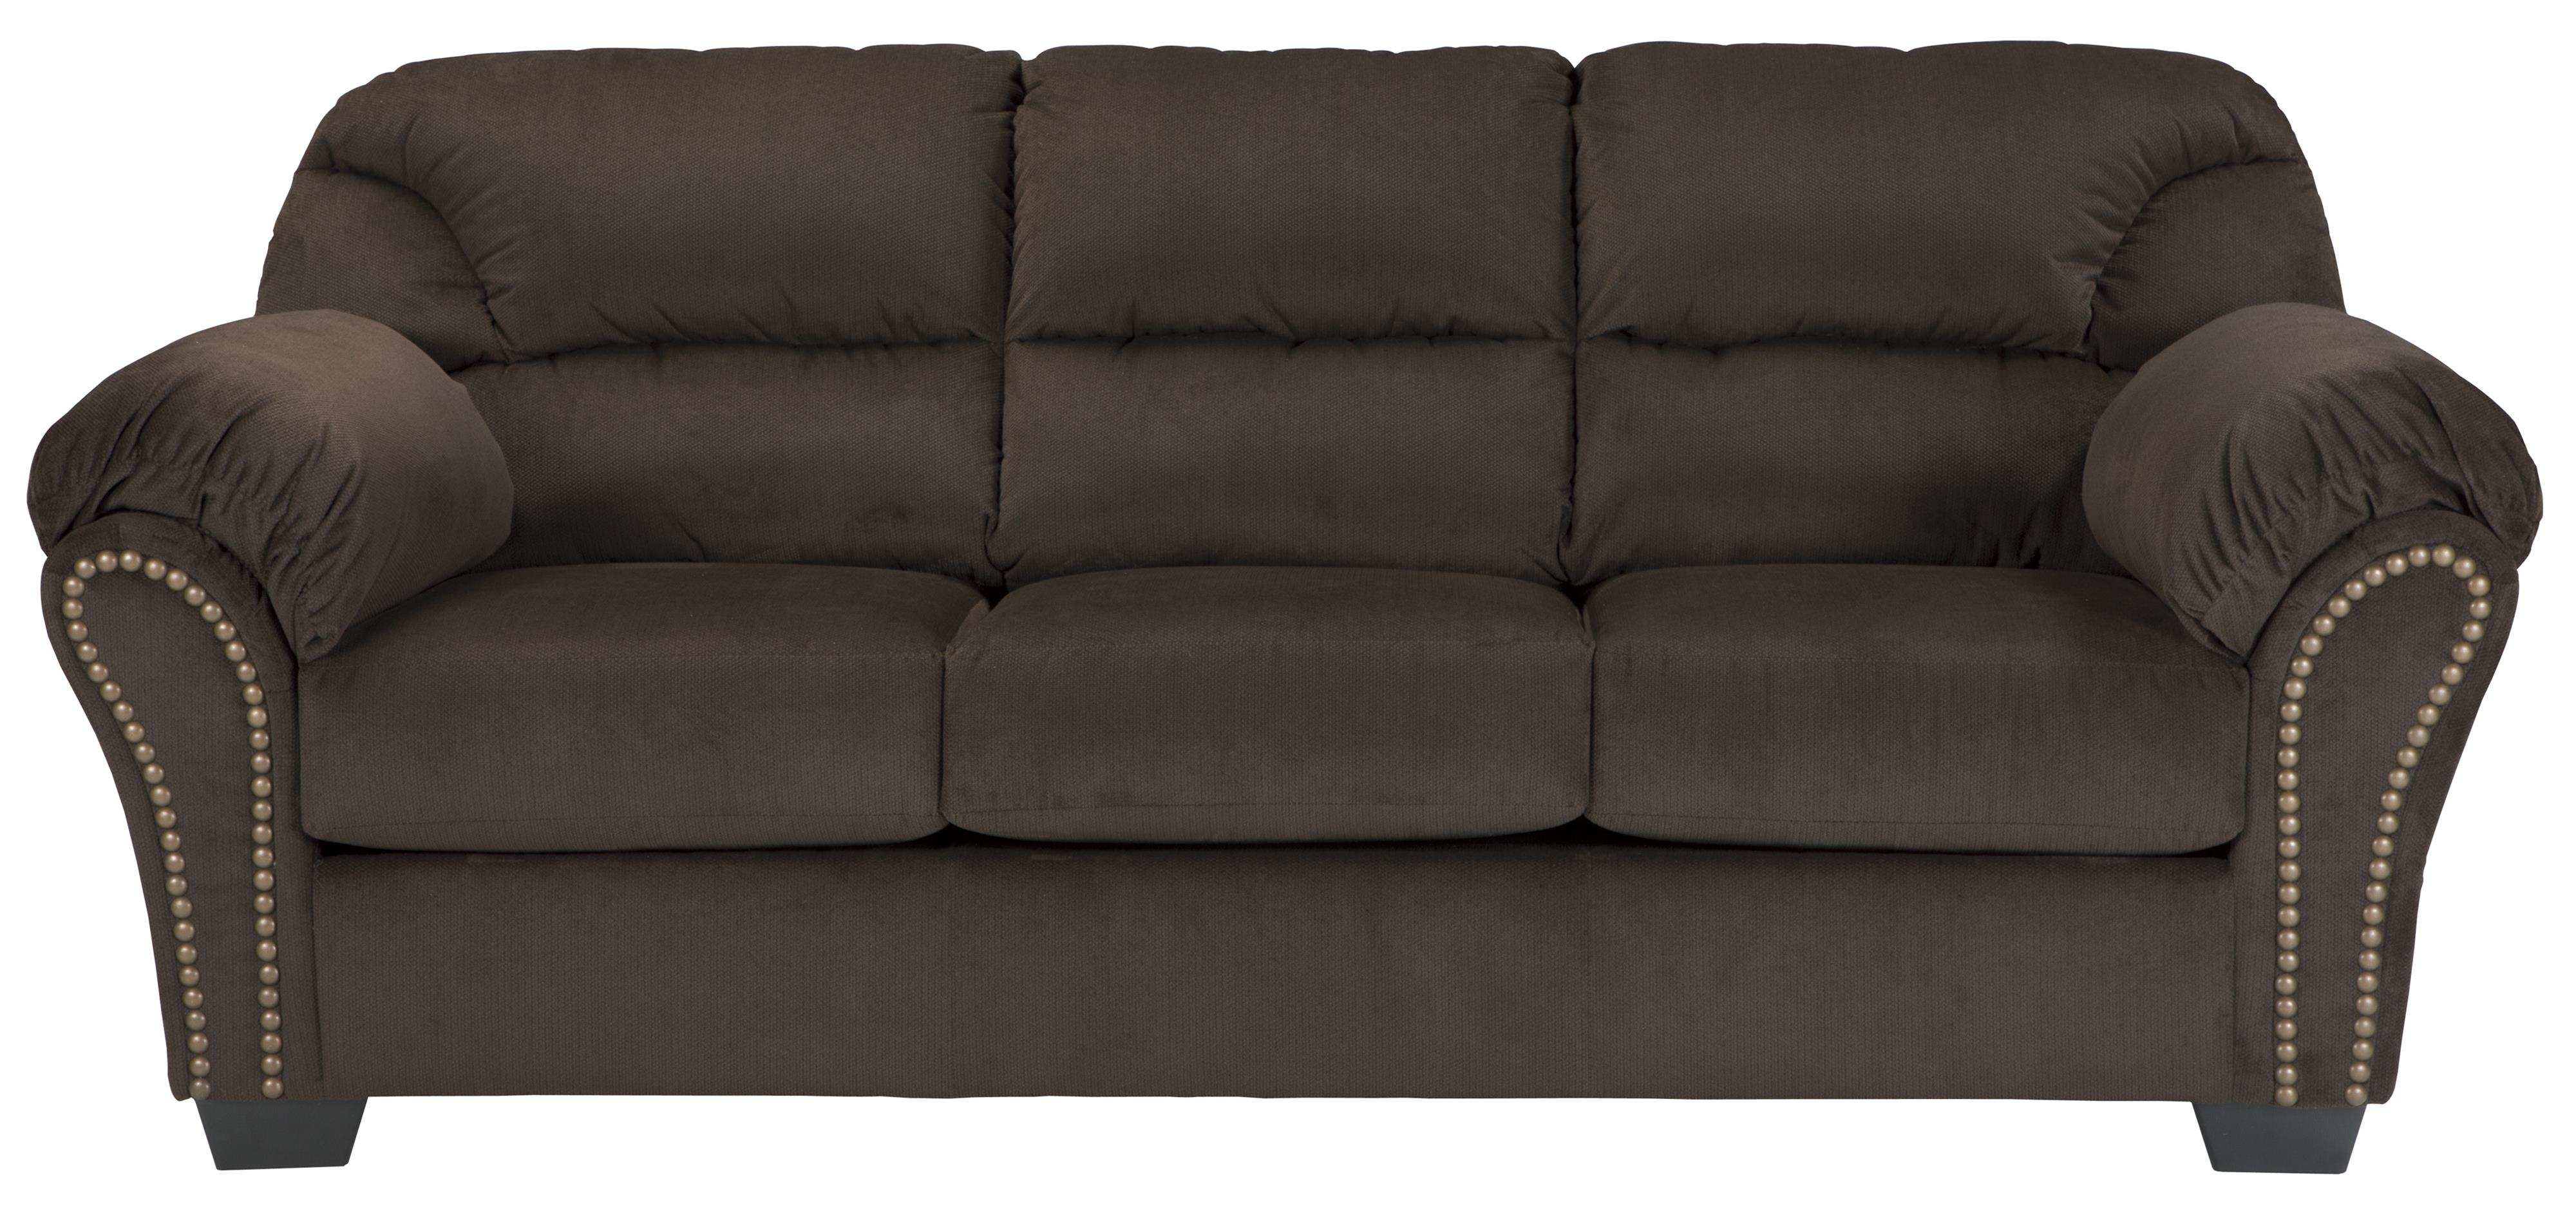 Signature Design by Ashley Kinlock Full Sofa Sleeper - Item Number: 3340136